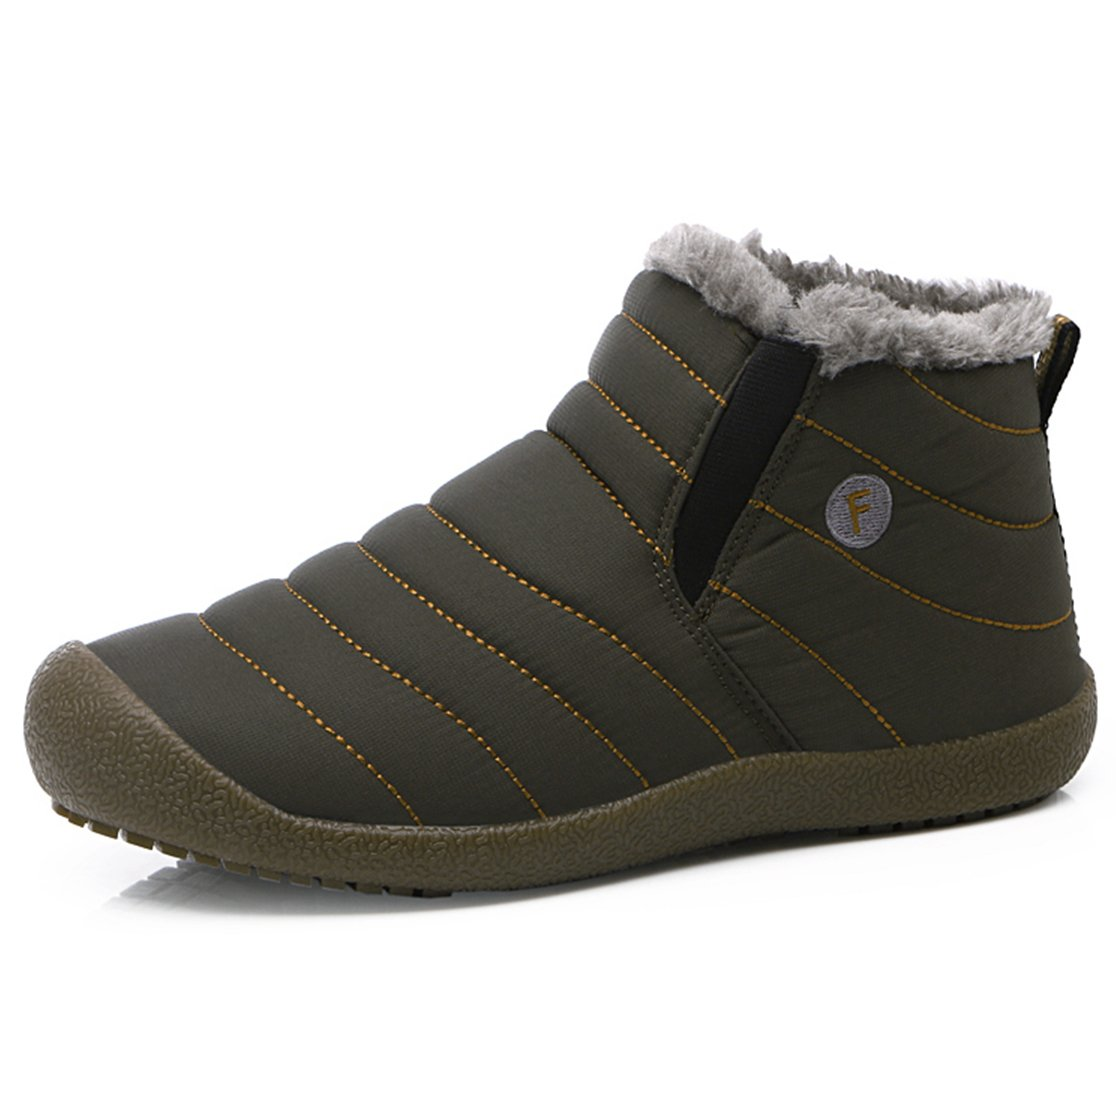 SITAILE Men Women Fur Lined Outdoor Slippers Slip on Ankle Snow Boots Winter Waterproof Lightweight Booties, Olive Ankle high 38